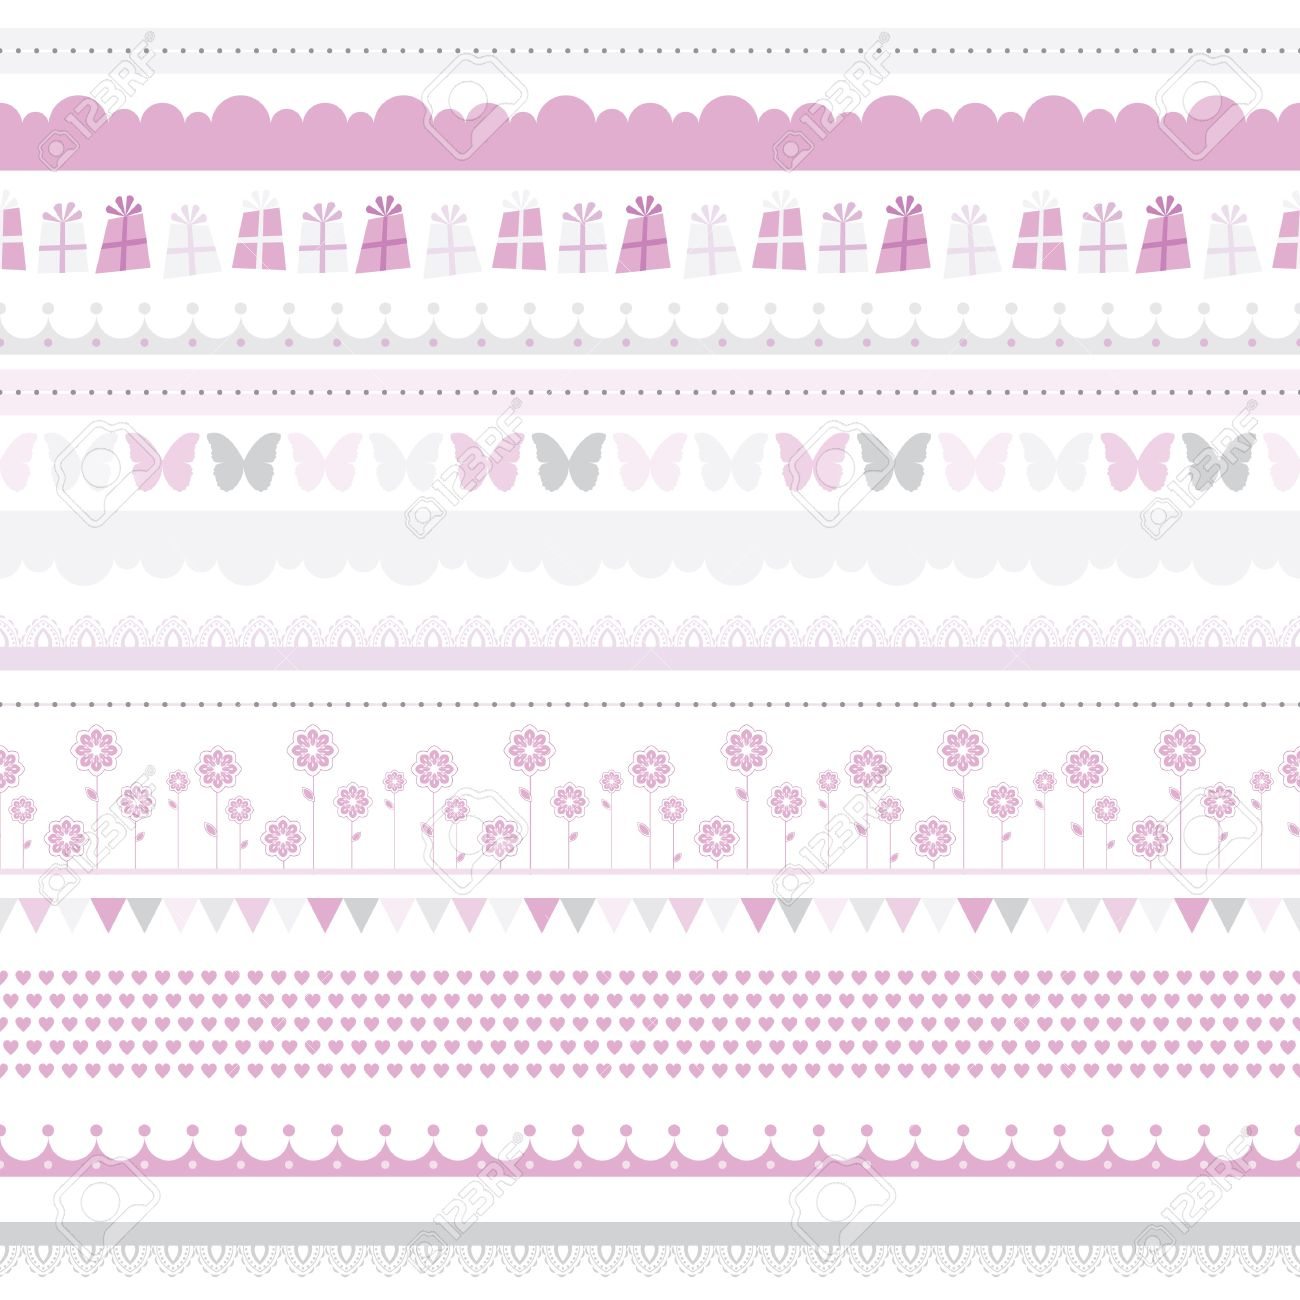 birthday girl border ; 16187687-cute-baby-seamless-border-child-birthday-pattern-girl-background-scrapbooking-kids-card-baby-party-c